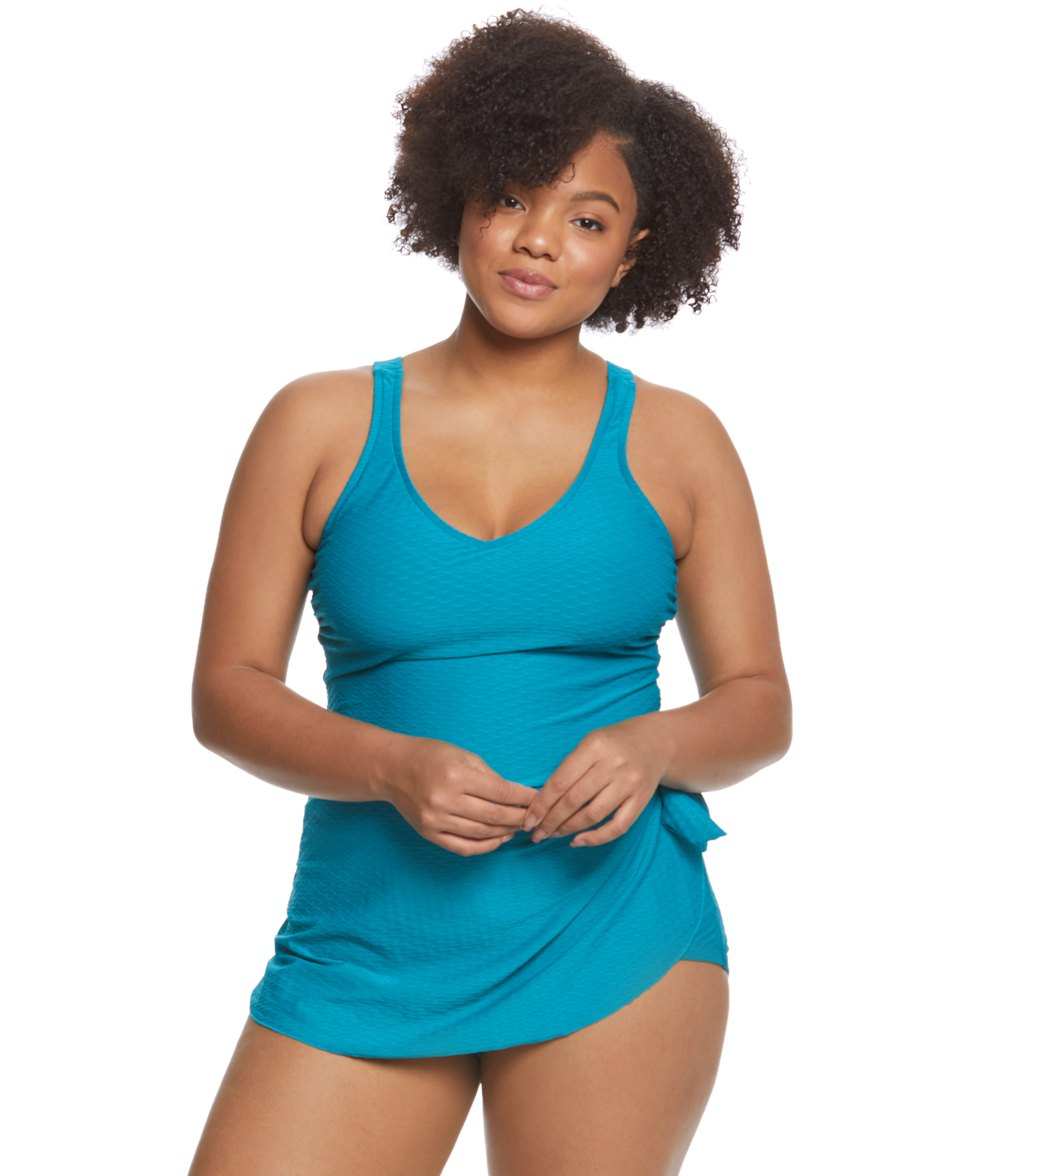 407def792d6 Maxine Plus Size Spa Solid Chlorine Resistant Sarong One Piece Swimsuit at  SwimOutlet.com - Free Shipping